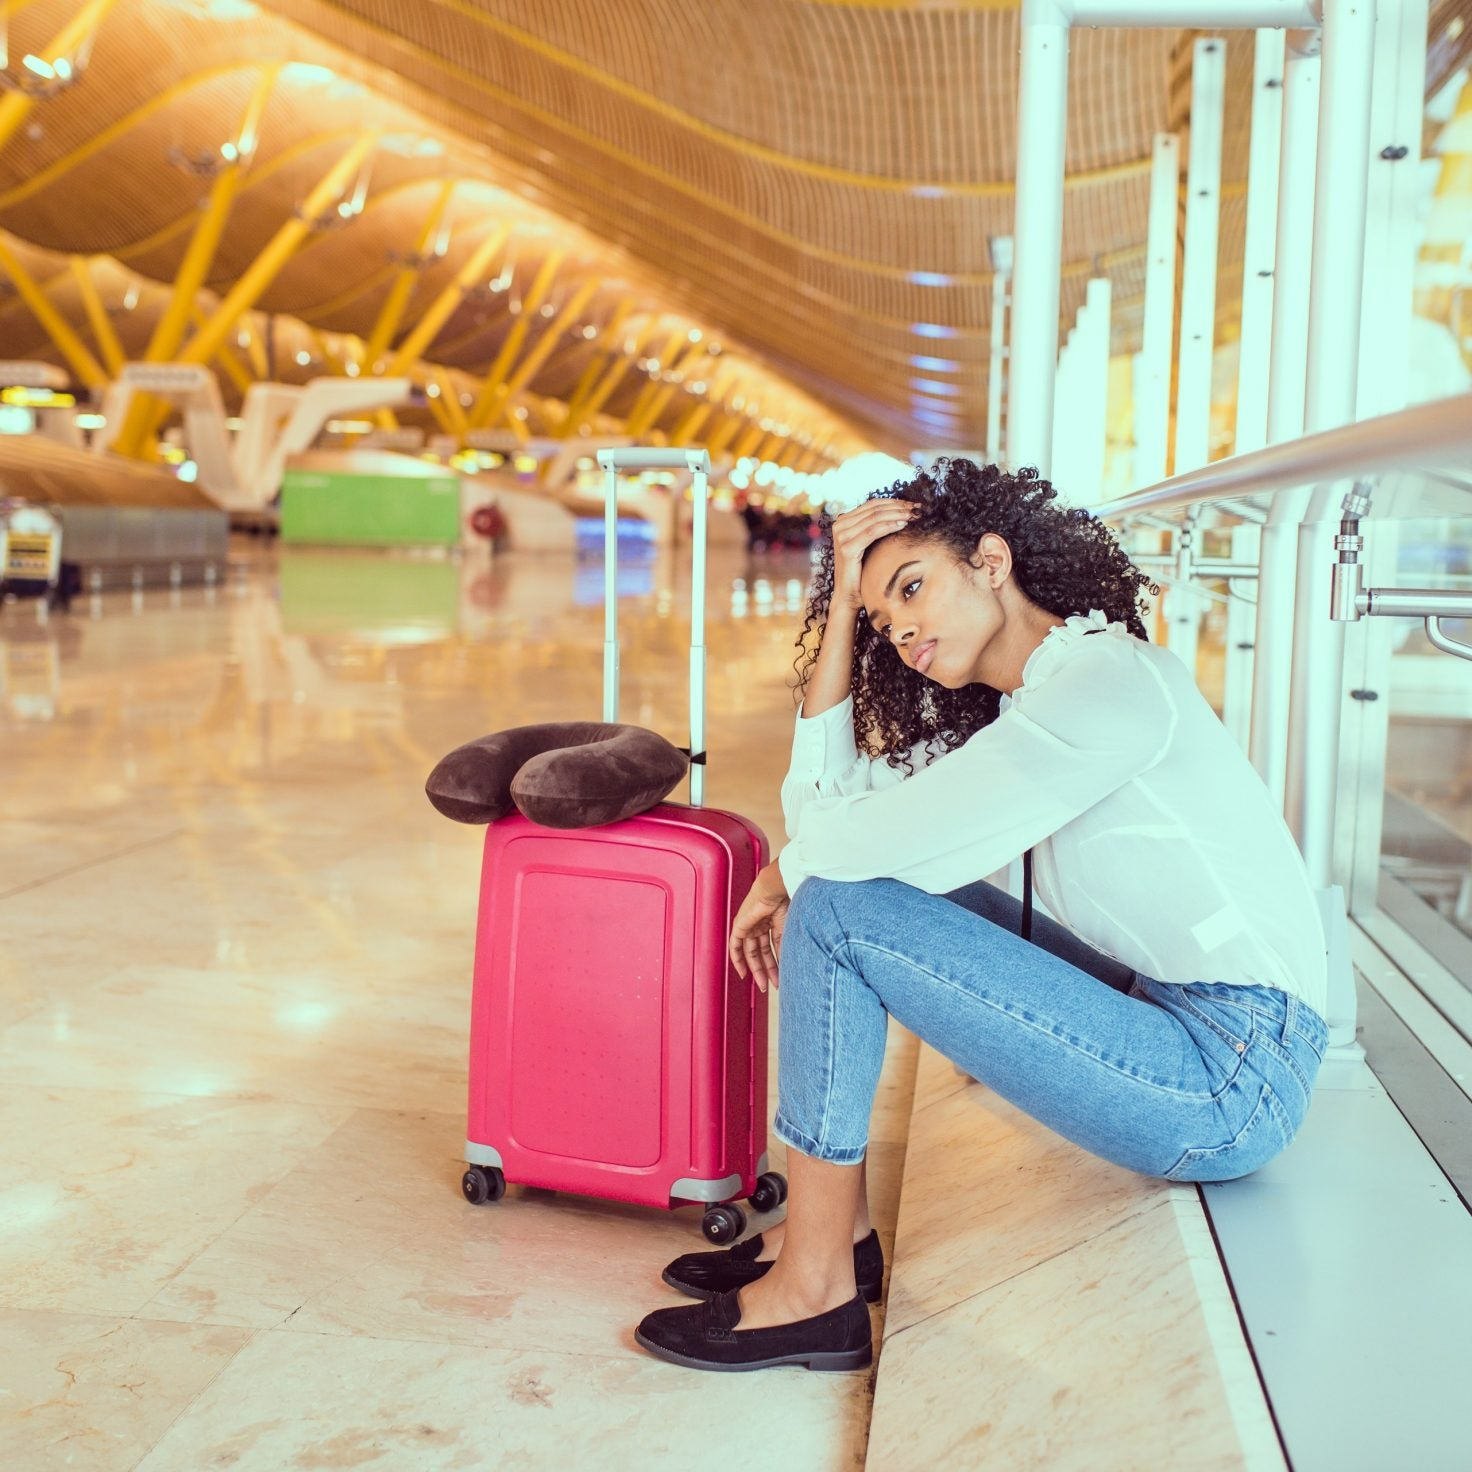 WOW Airlines' Bankruptcy Left Passengers Stranded, So Here's How To Avoid Getting Stuck At The Airport